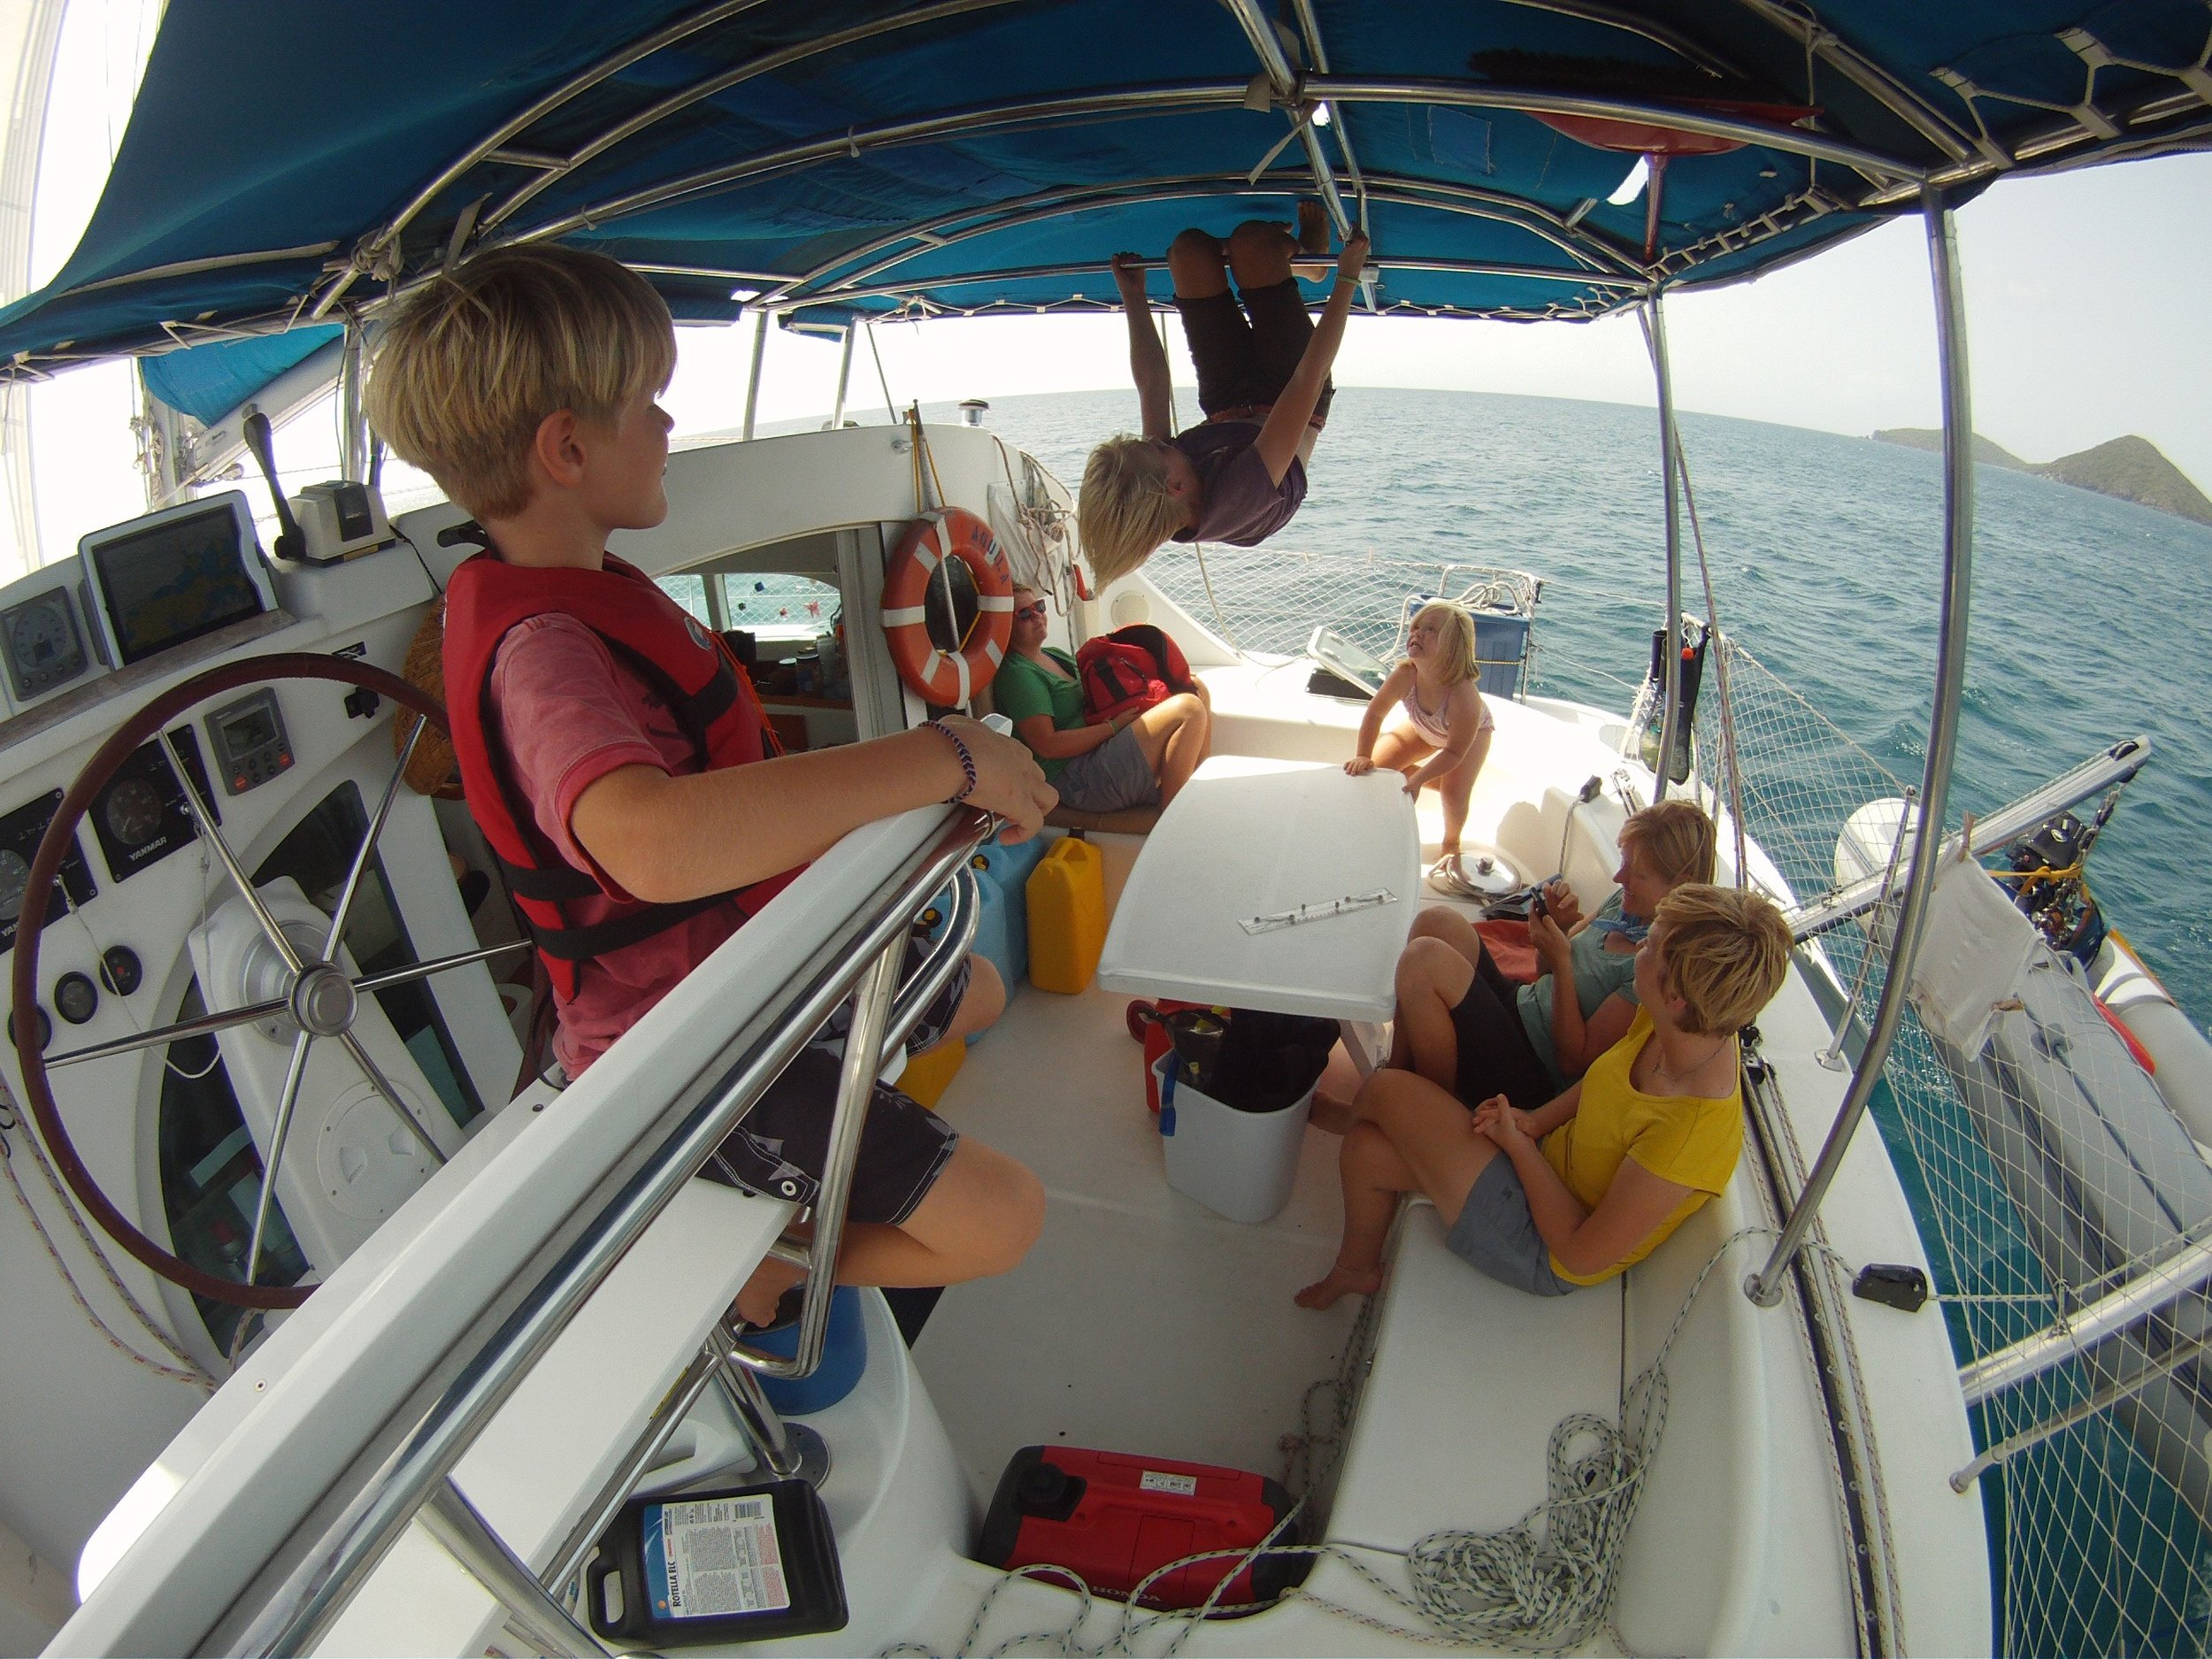 Our family aboard Fezywig in the British Virgin Islands.